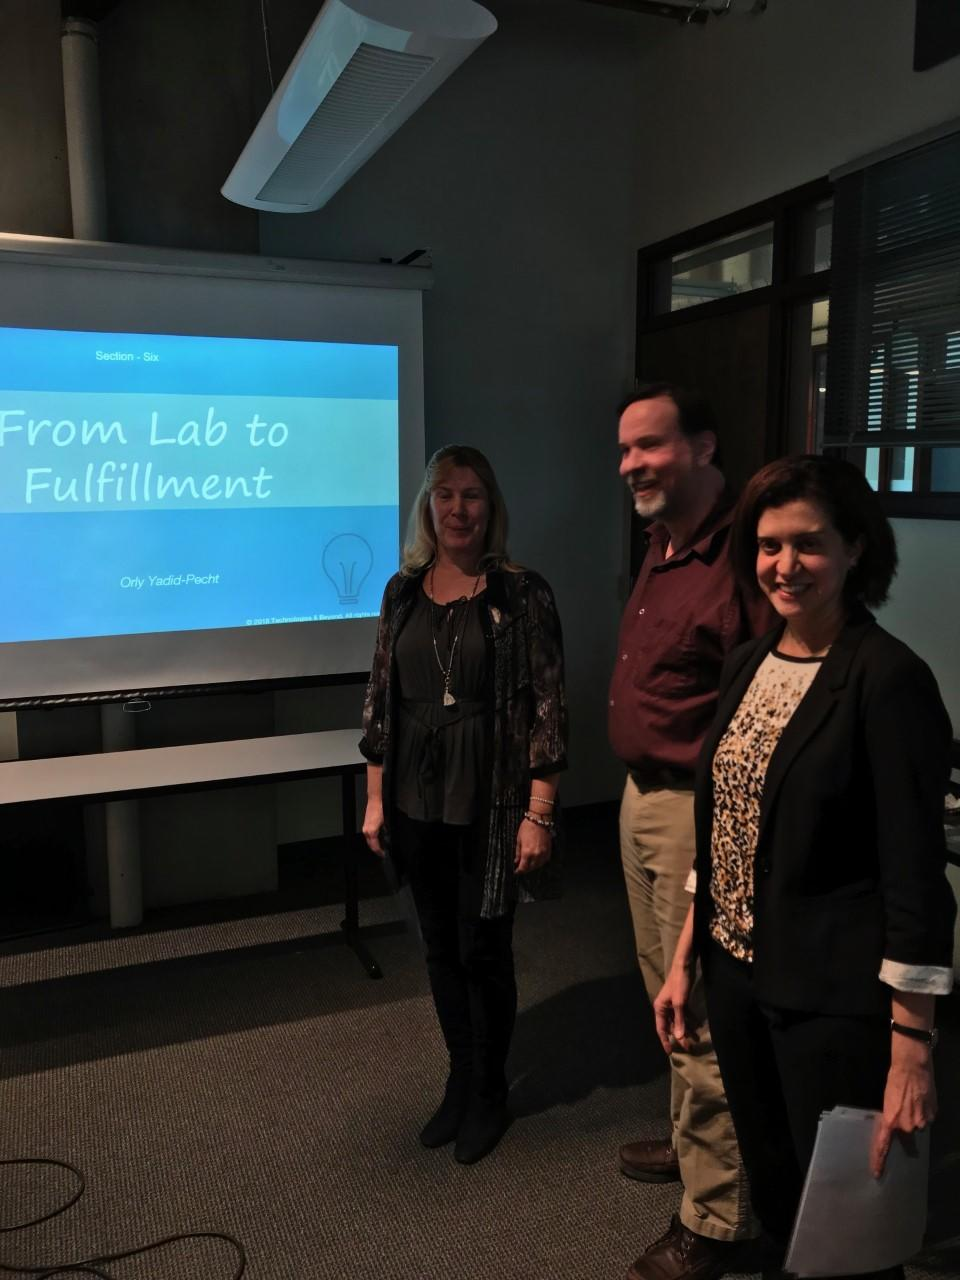 Dr. Yadid-Pecht presenting the FL2F at the UofC, with Dr. Skone (AVPR, UofC) and Dr. Westwick (DH, ENEL, UofC)